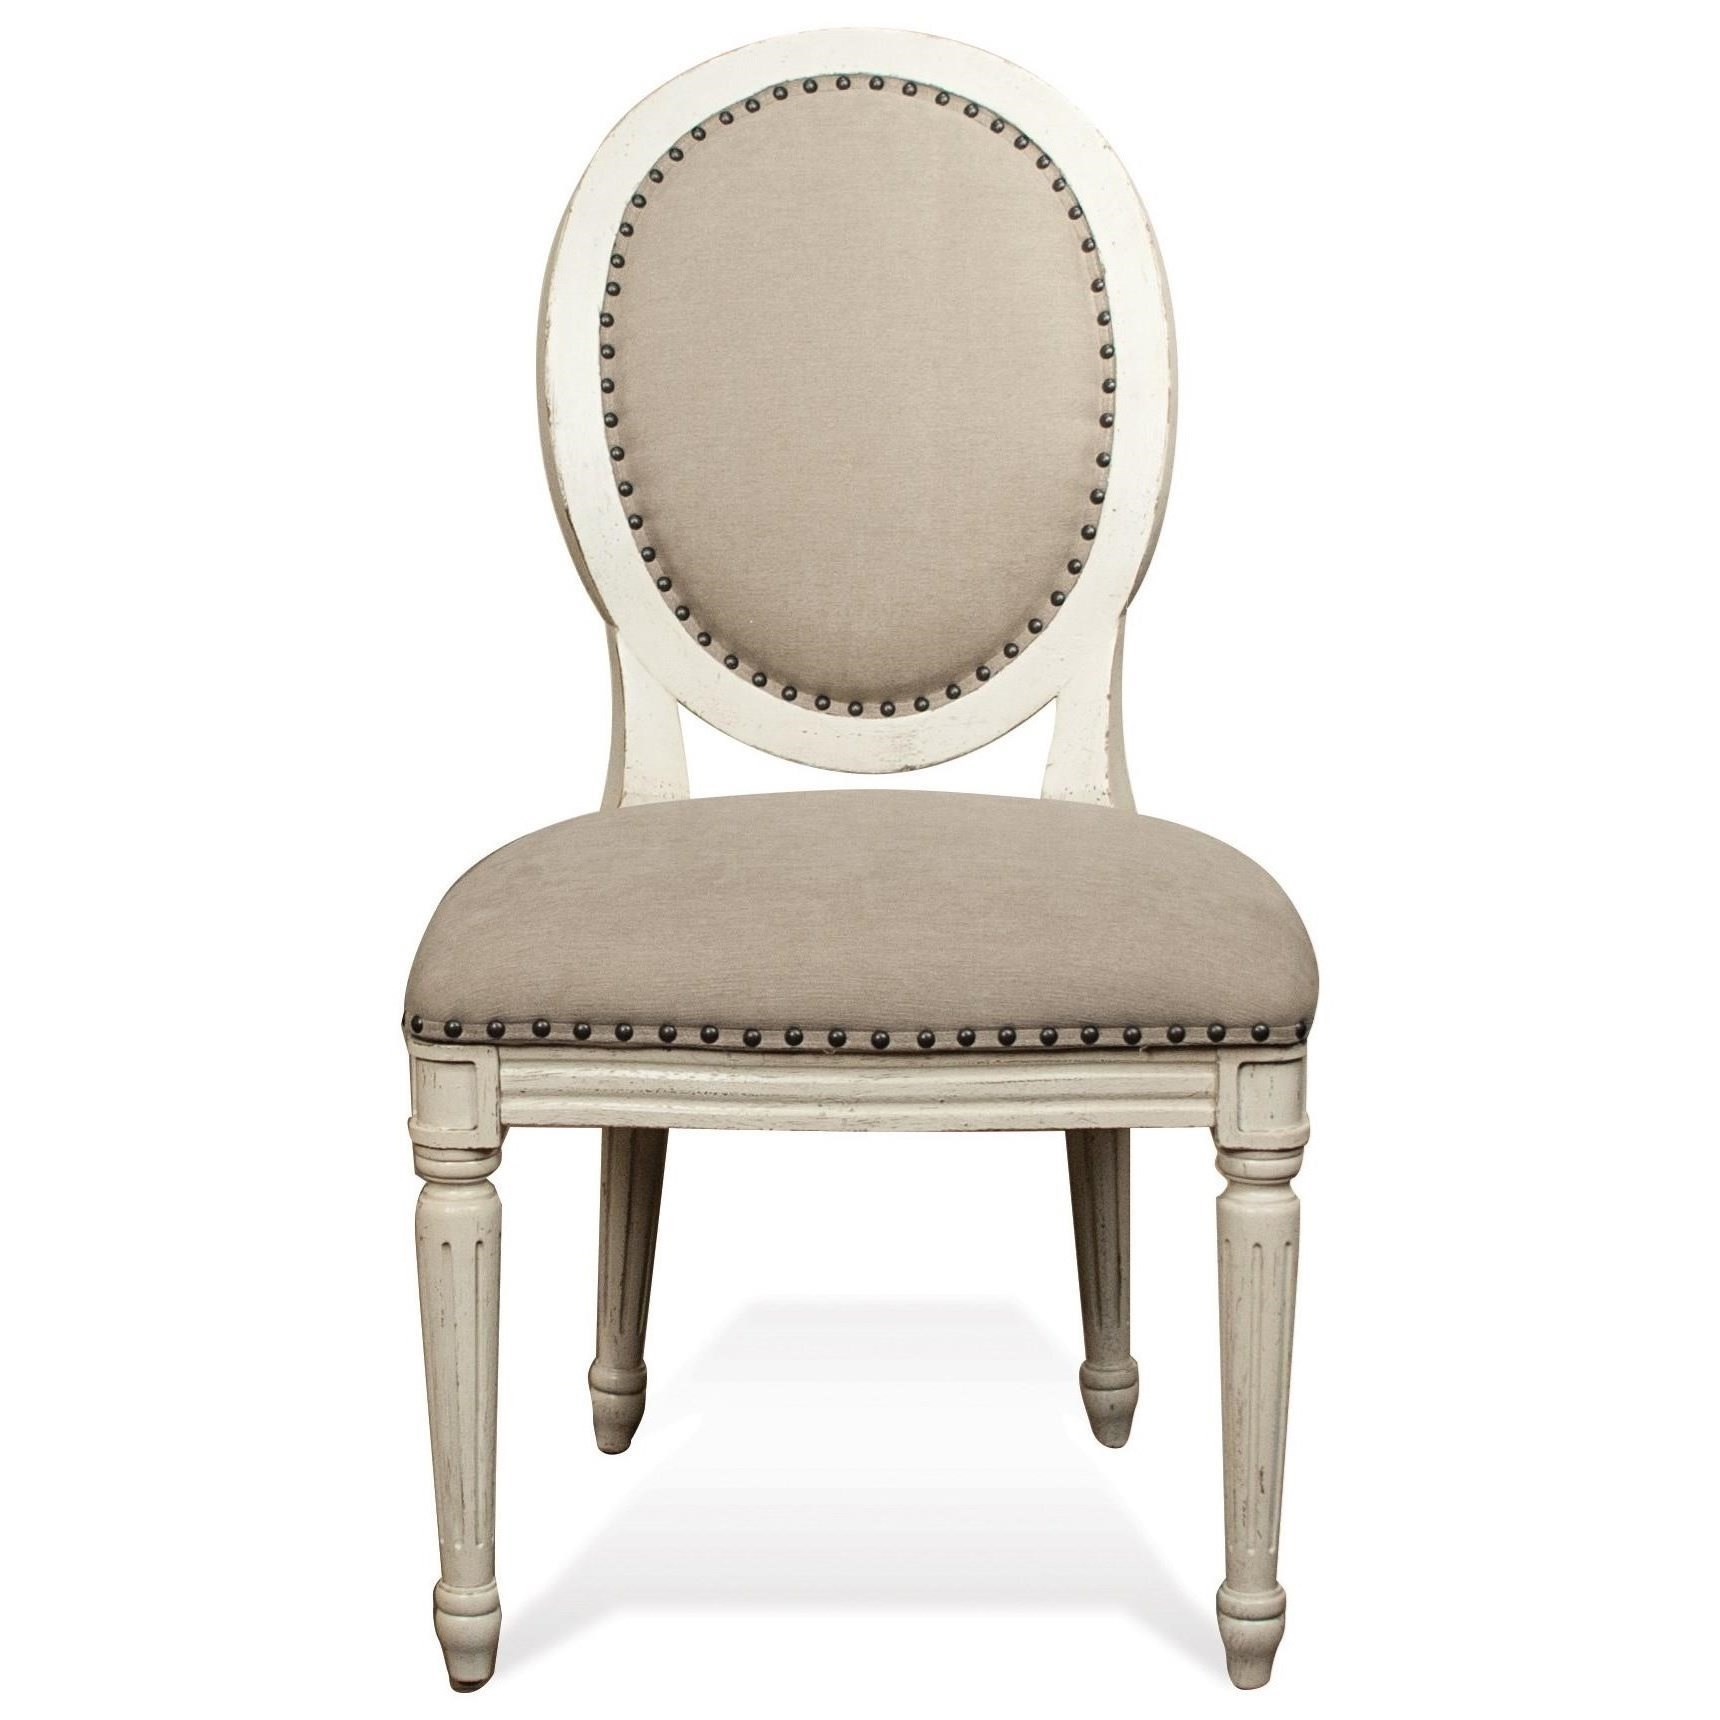 Charming Riverside Furniture HuntleighUpholstered Oval Side Chair ...